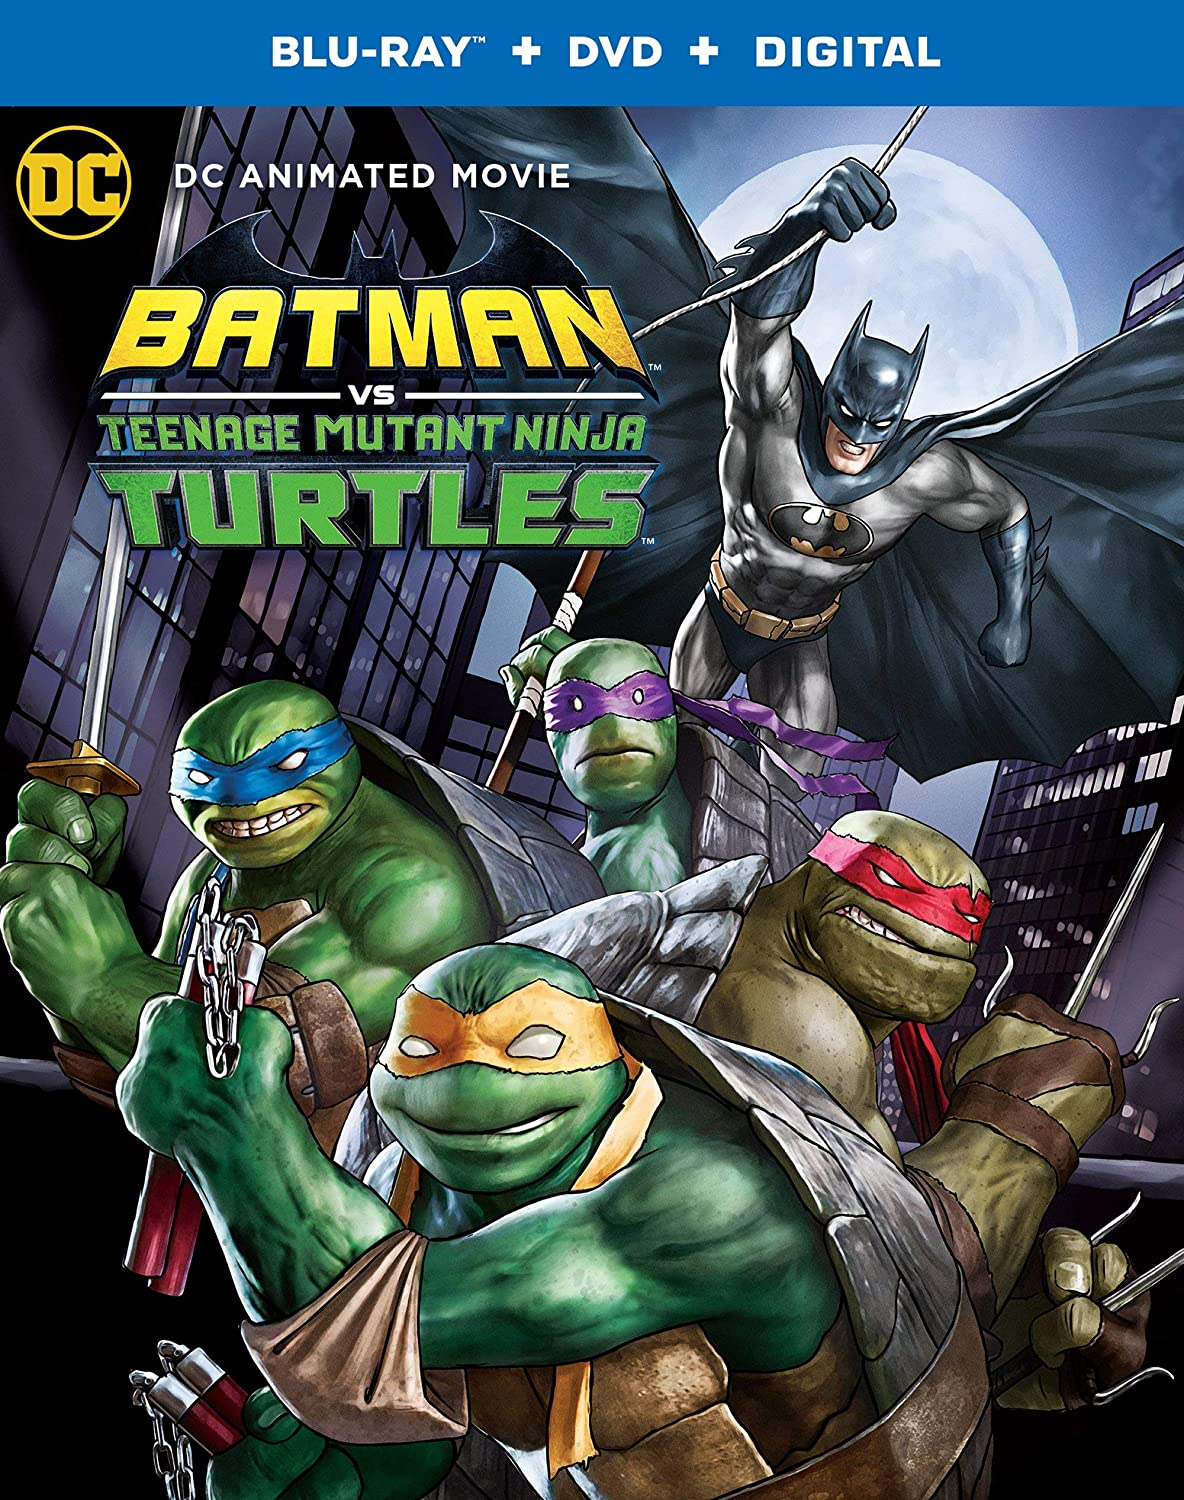 Amazon.com: Batman vs. Teenage Mutant Ninja Turtles (Blu-ray ...